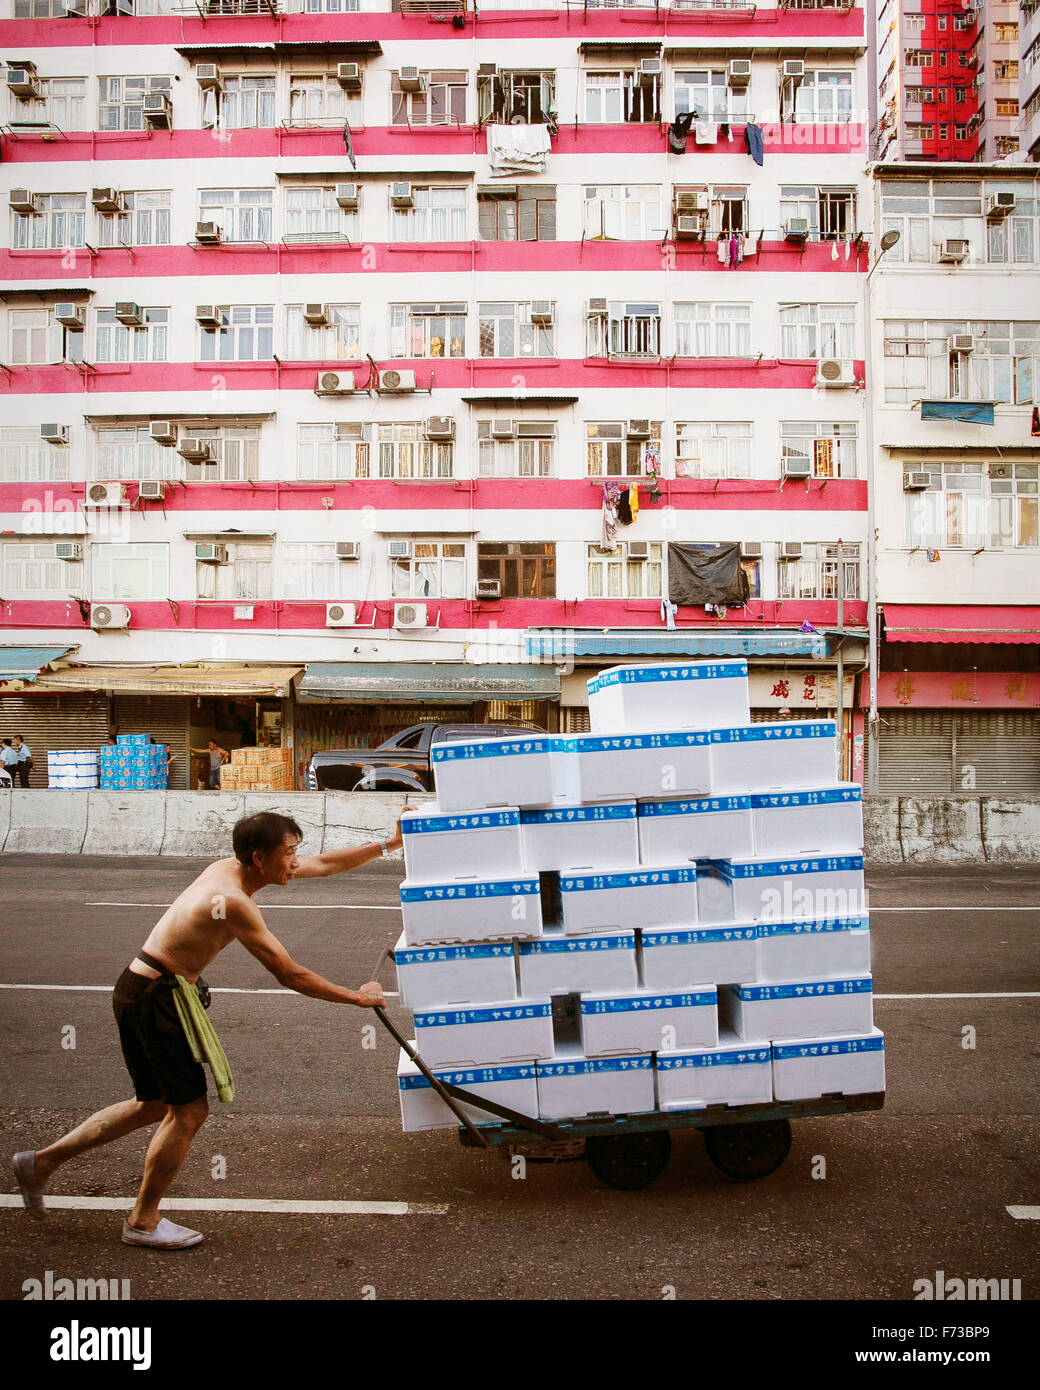 A person pushes a hand trolley loaded with white colour boxes along the road in Kowloon, Hong Kong on his left side Stock Photo